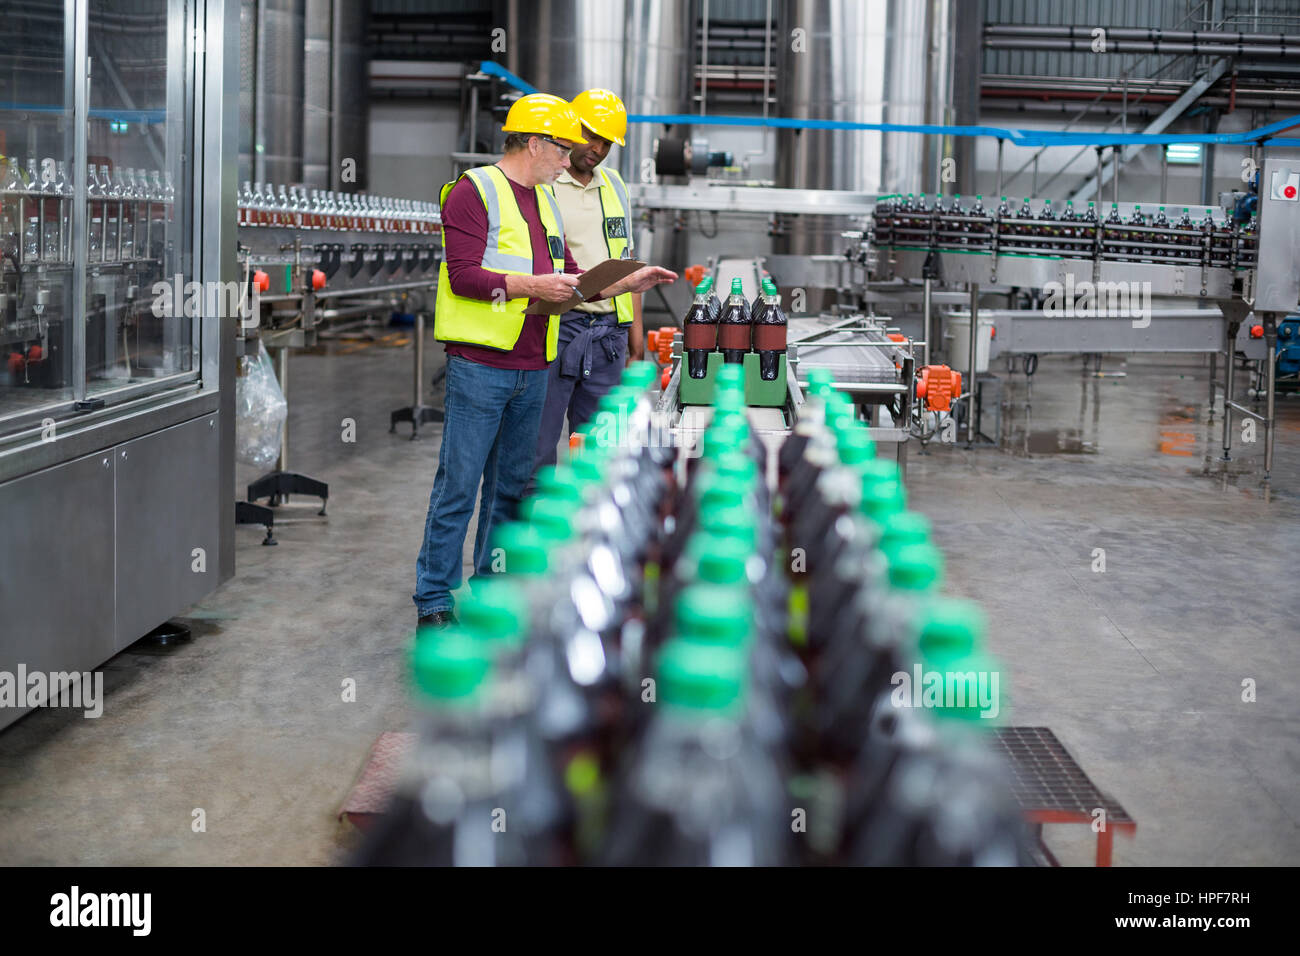 Two factory workers monitoring cold drink bottles on production line at drinks production plant Stock Photo